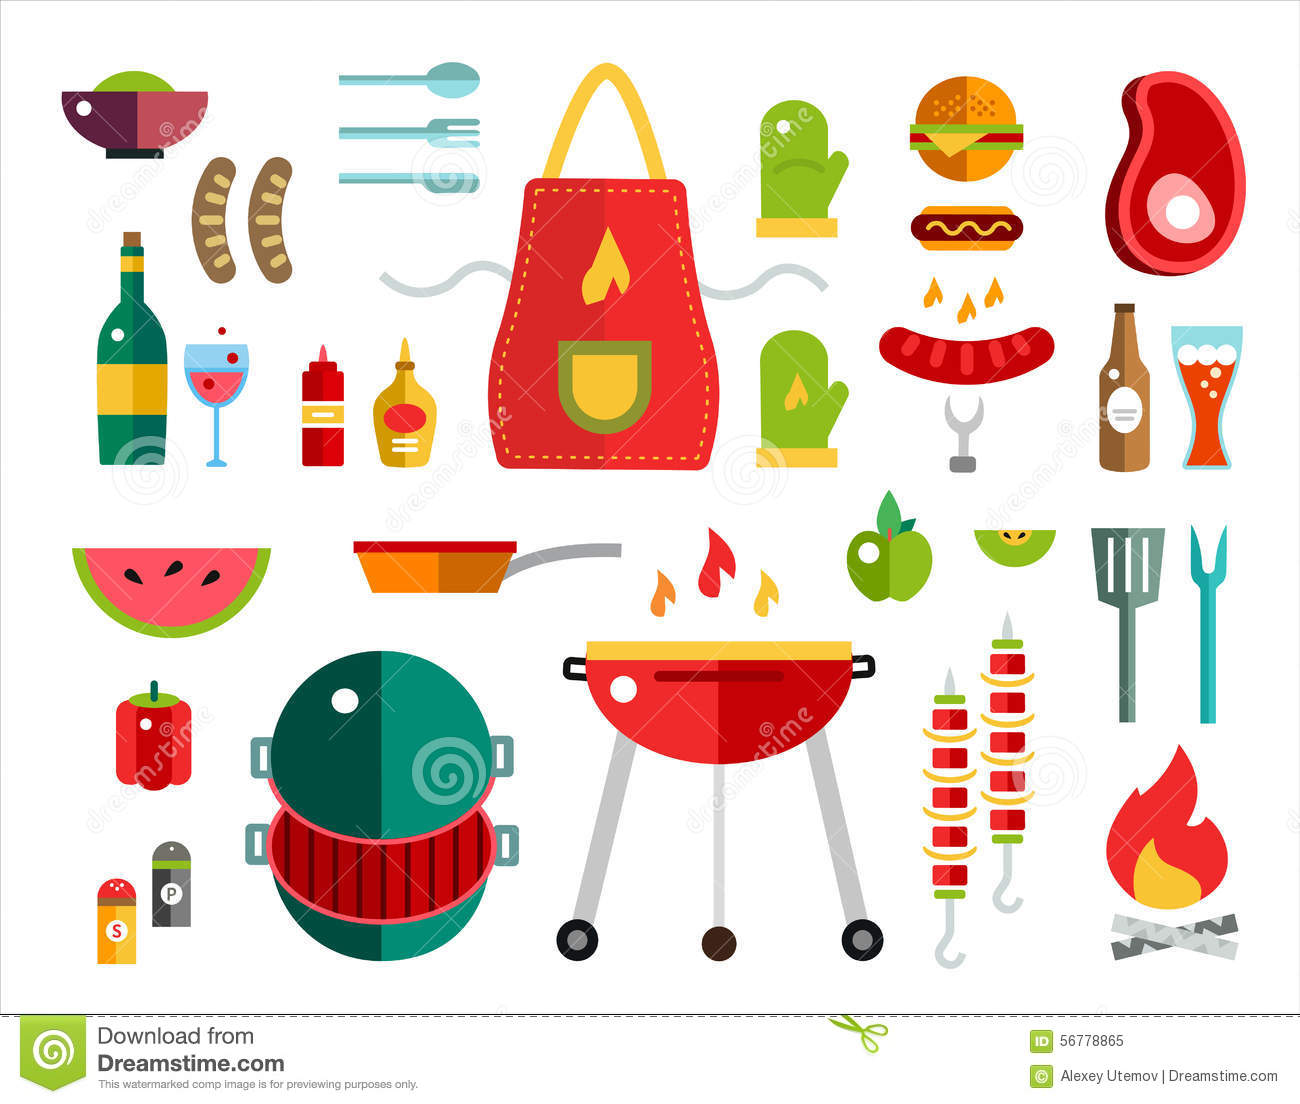 camparison symbolism of objects in kitchen Comparison to that of the ussr vietnam's communist  more direct in  comparison to chinese showing  by researching the cultural meanings  behind these three objects, it could  for example, kitchen utensils such as  forks, knives.